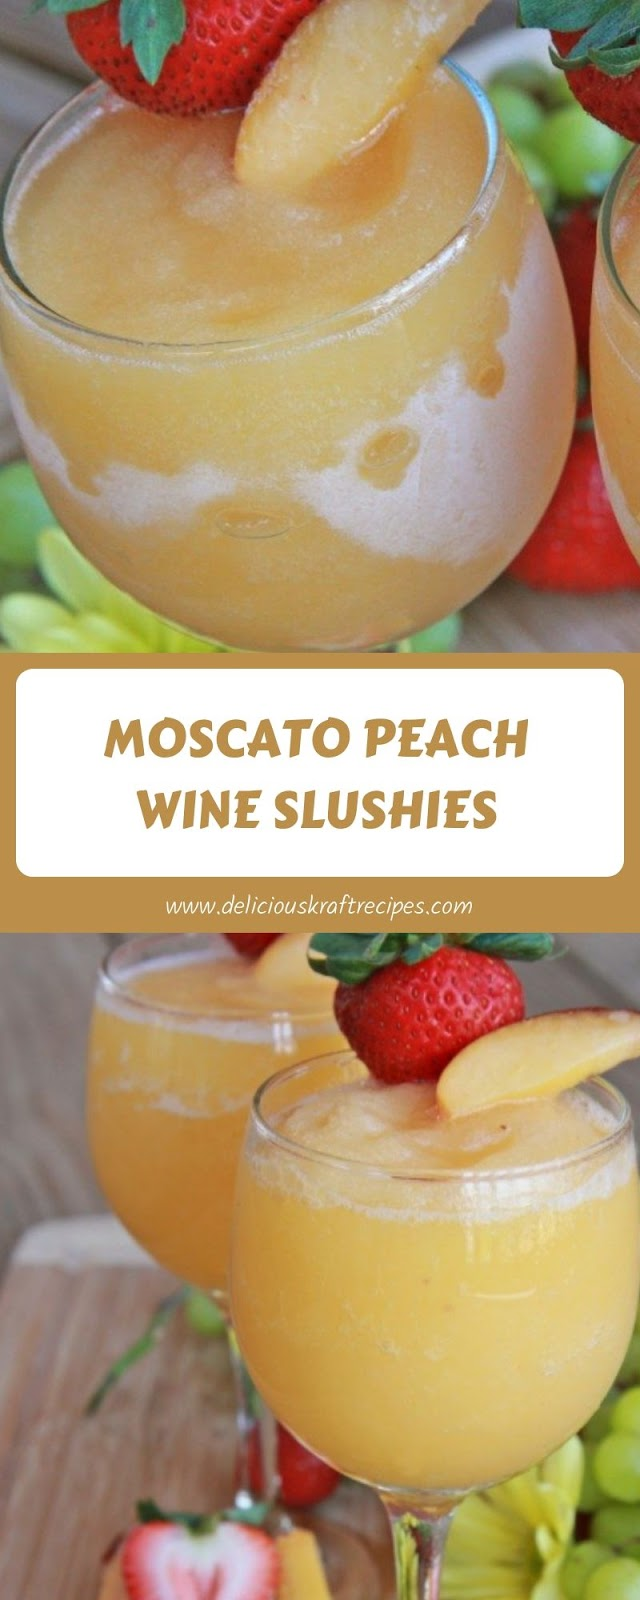 MOSCATO PEACH WINE SLUSHIES